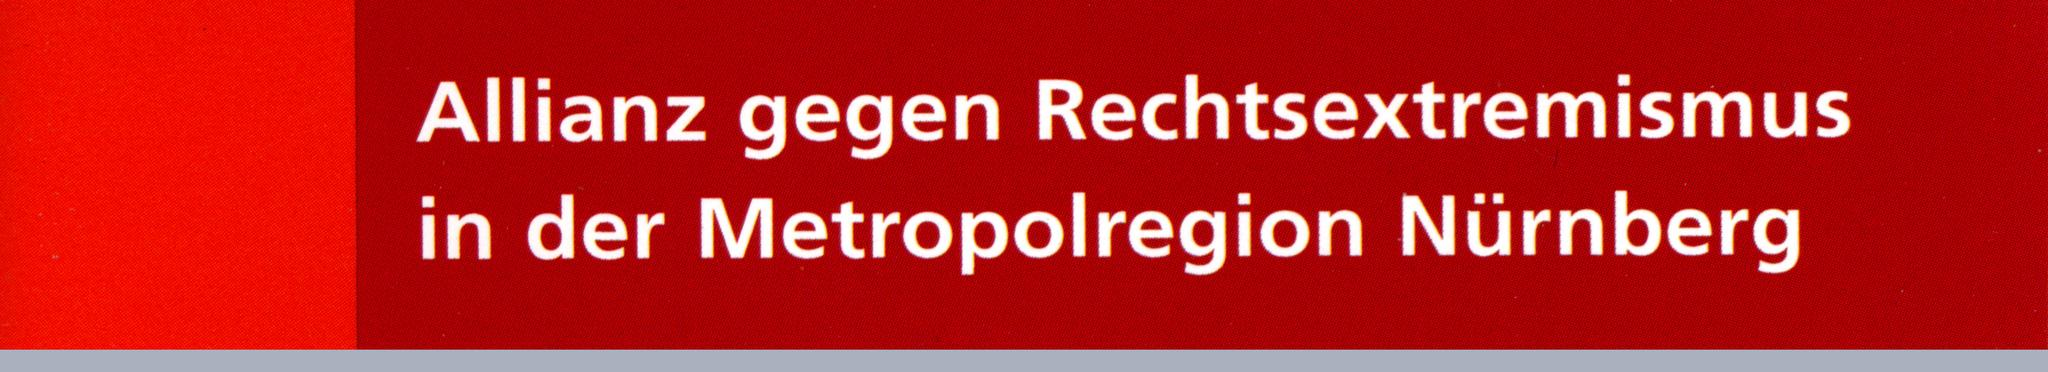 Logo der Allianz gg. Rechts in der Metropolregion